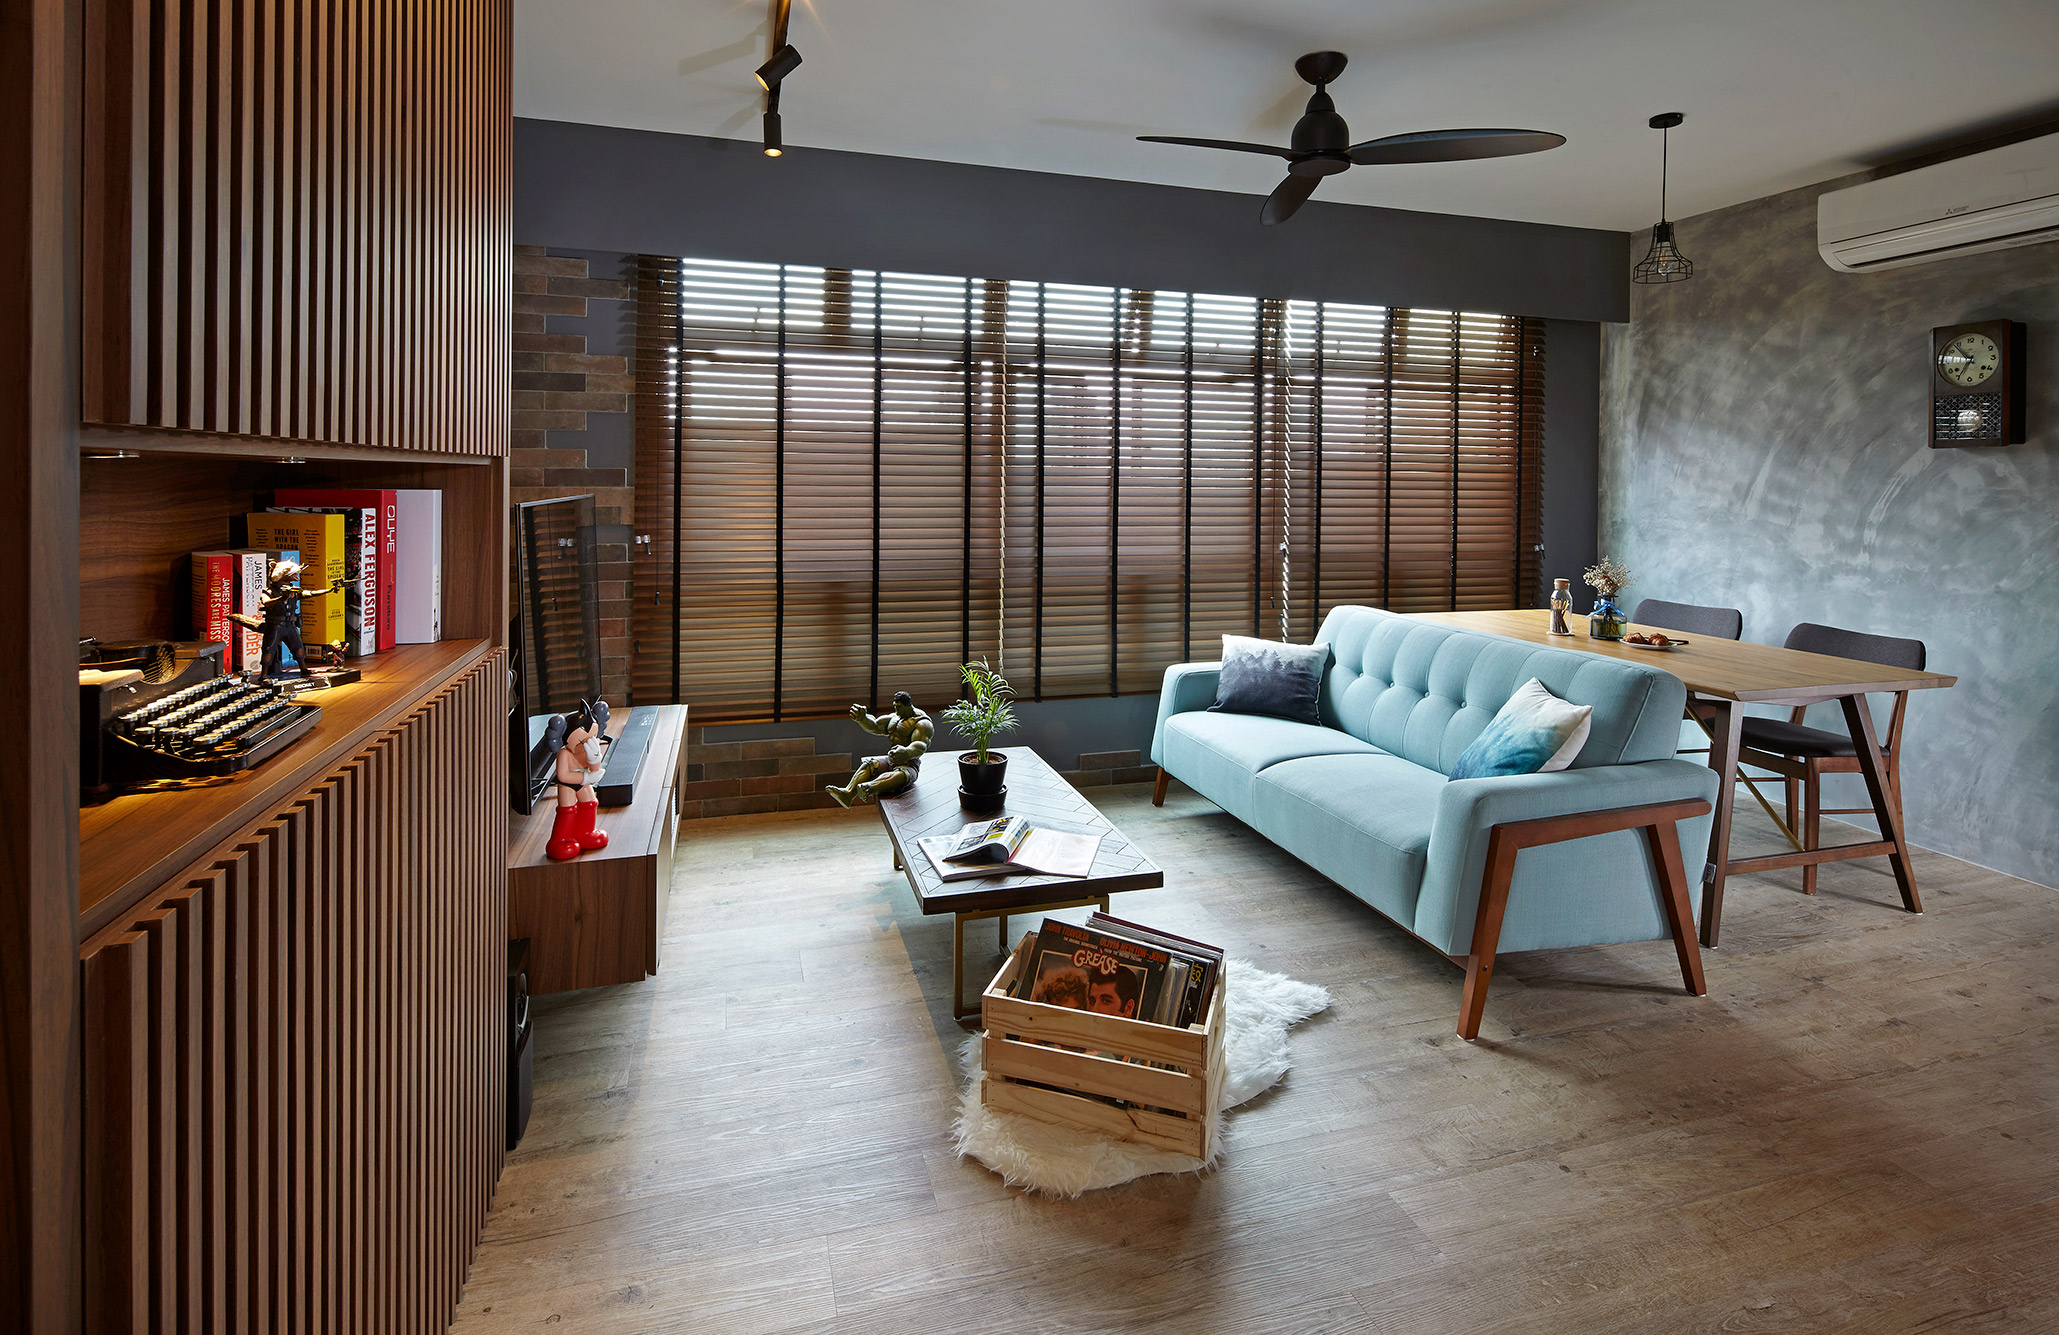 squarerooms-notion-of-w-singapore-interior-design-living-room-home-cosy-moody-wood-classy